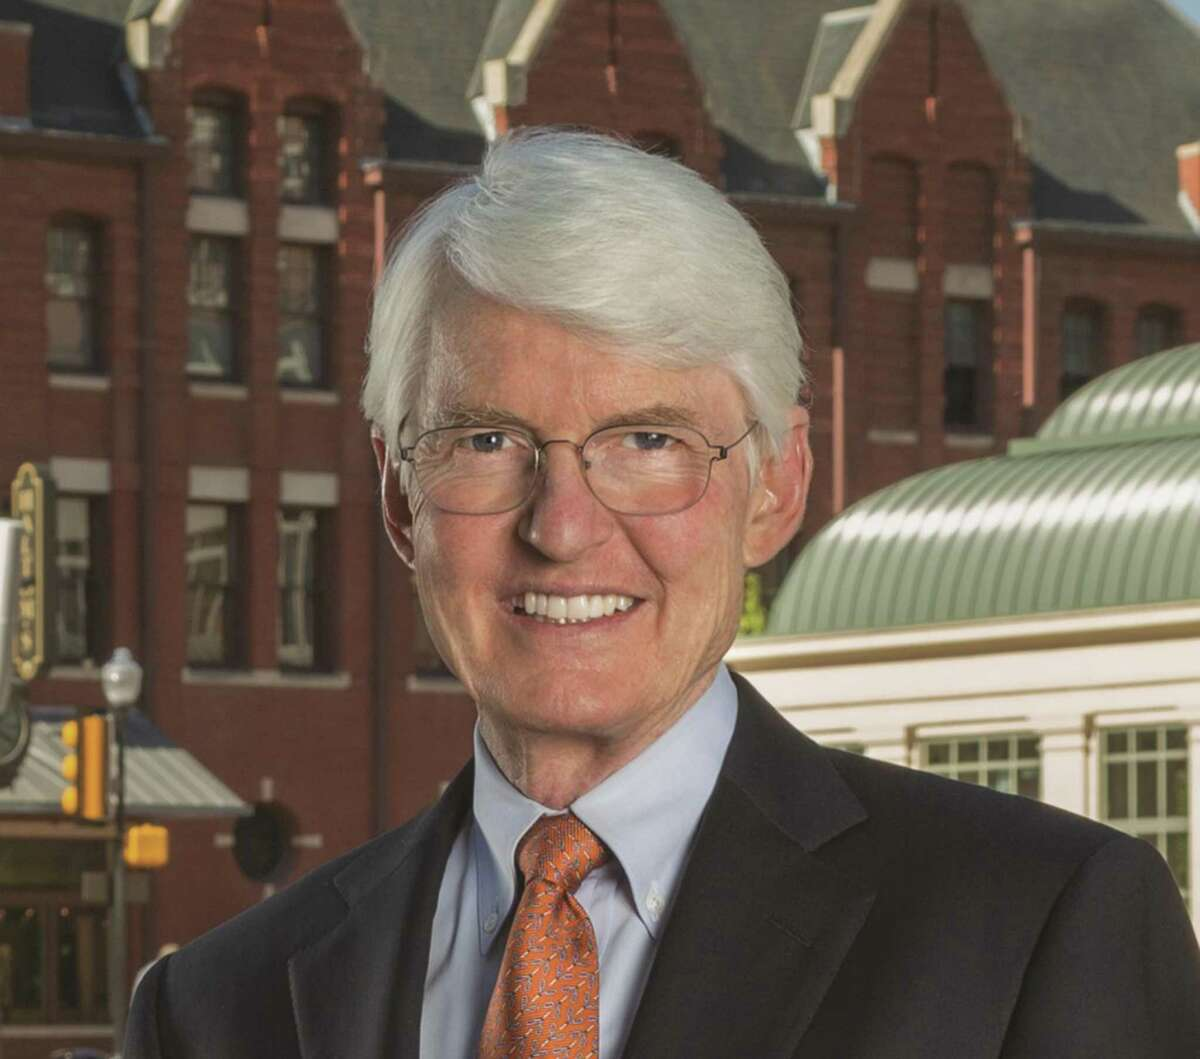 Edward P. Bass of Forth Worth, Texas, a billionaire and philanthropist who graduated from Yale University in 1967, had donated $160 million to renovate the Yale Peabody Museum of Natural History.